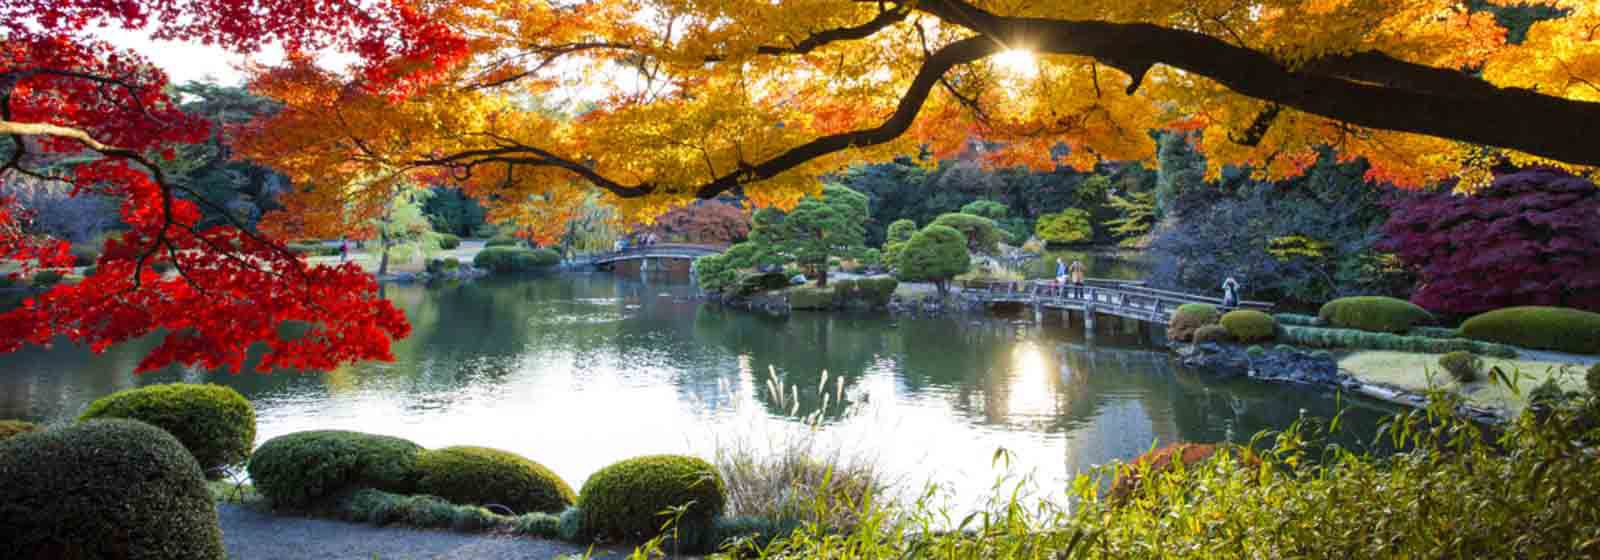 Plan your trip to Japan